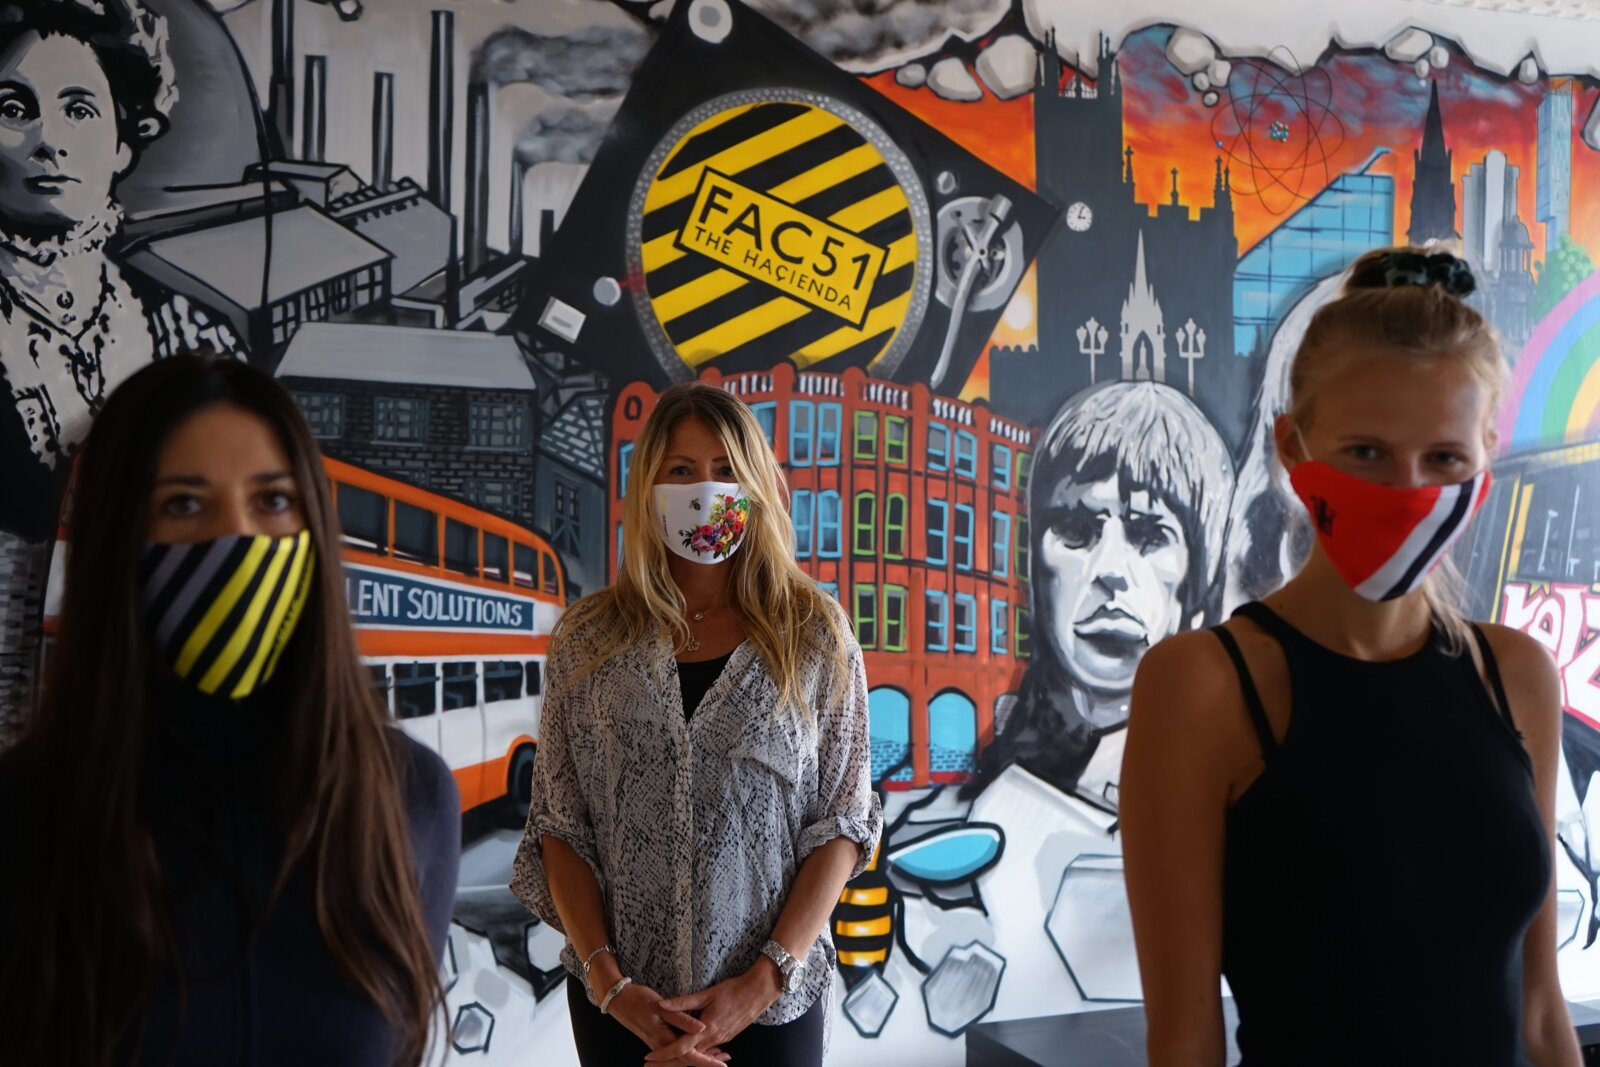 This local artist is selling Manchester-themed face masks to raise money for charity, The Manc